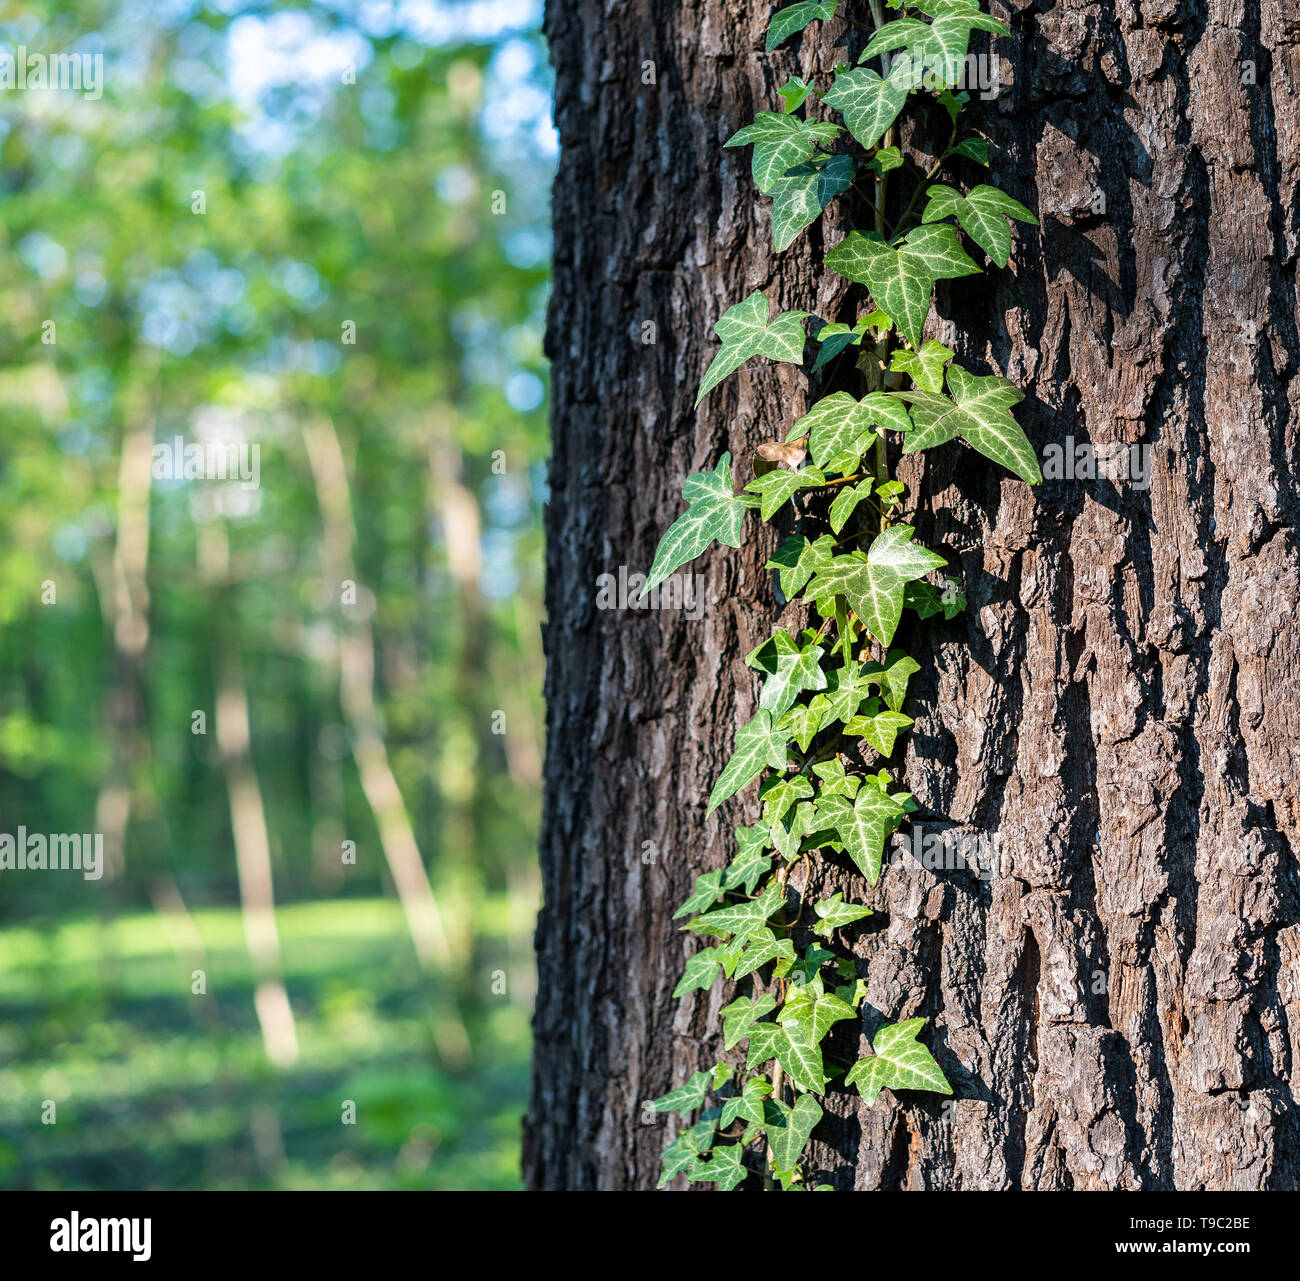 Ivy hedera helix on a horse chestnut aesculus hippocastanum, also known as conker. The background shows blurred trees on a sunny day. - Stock Image